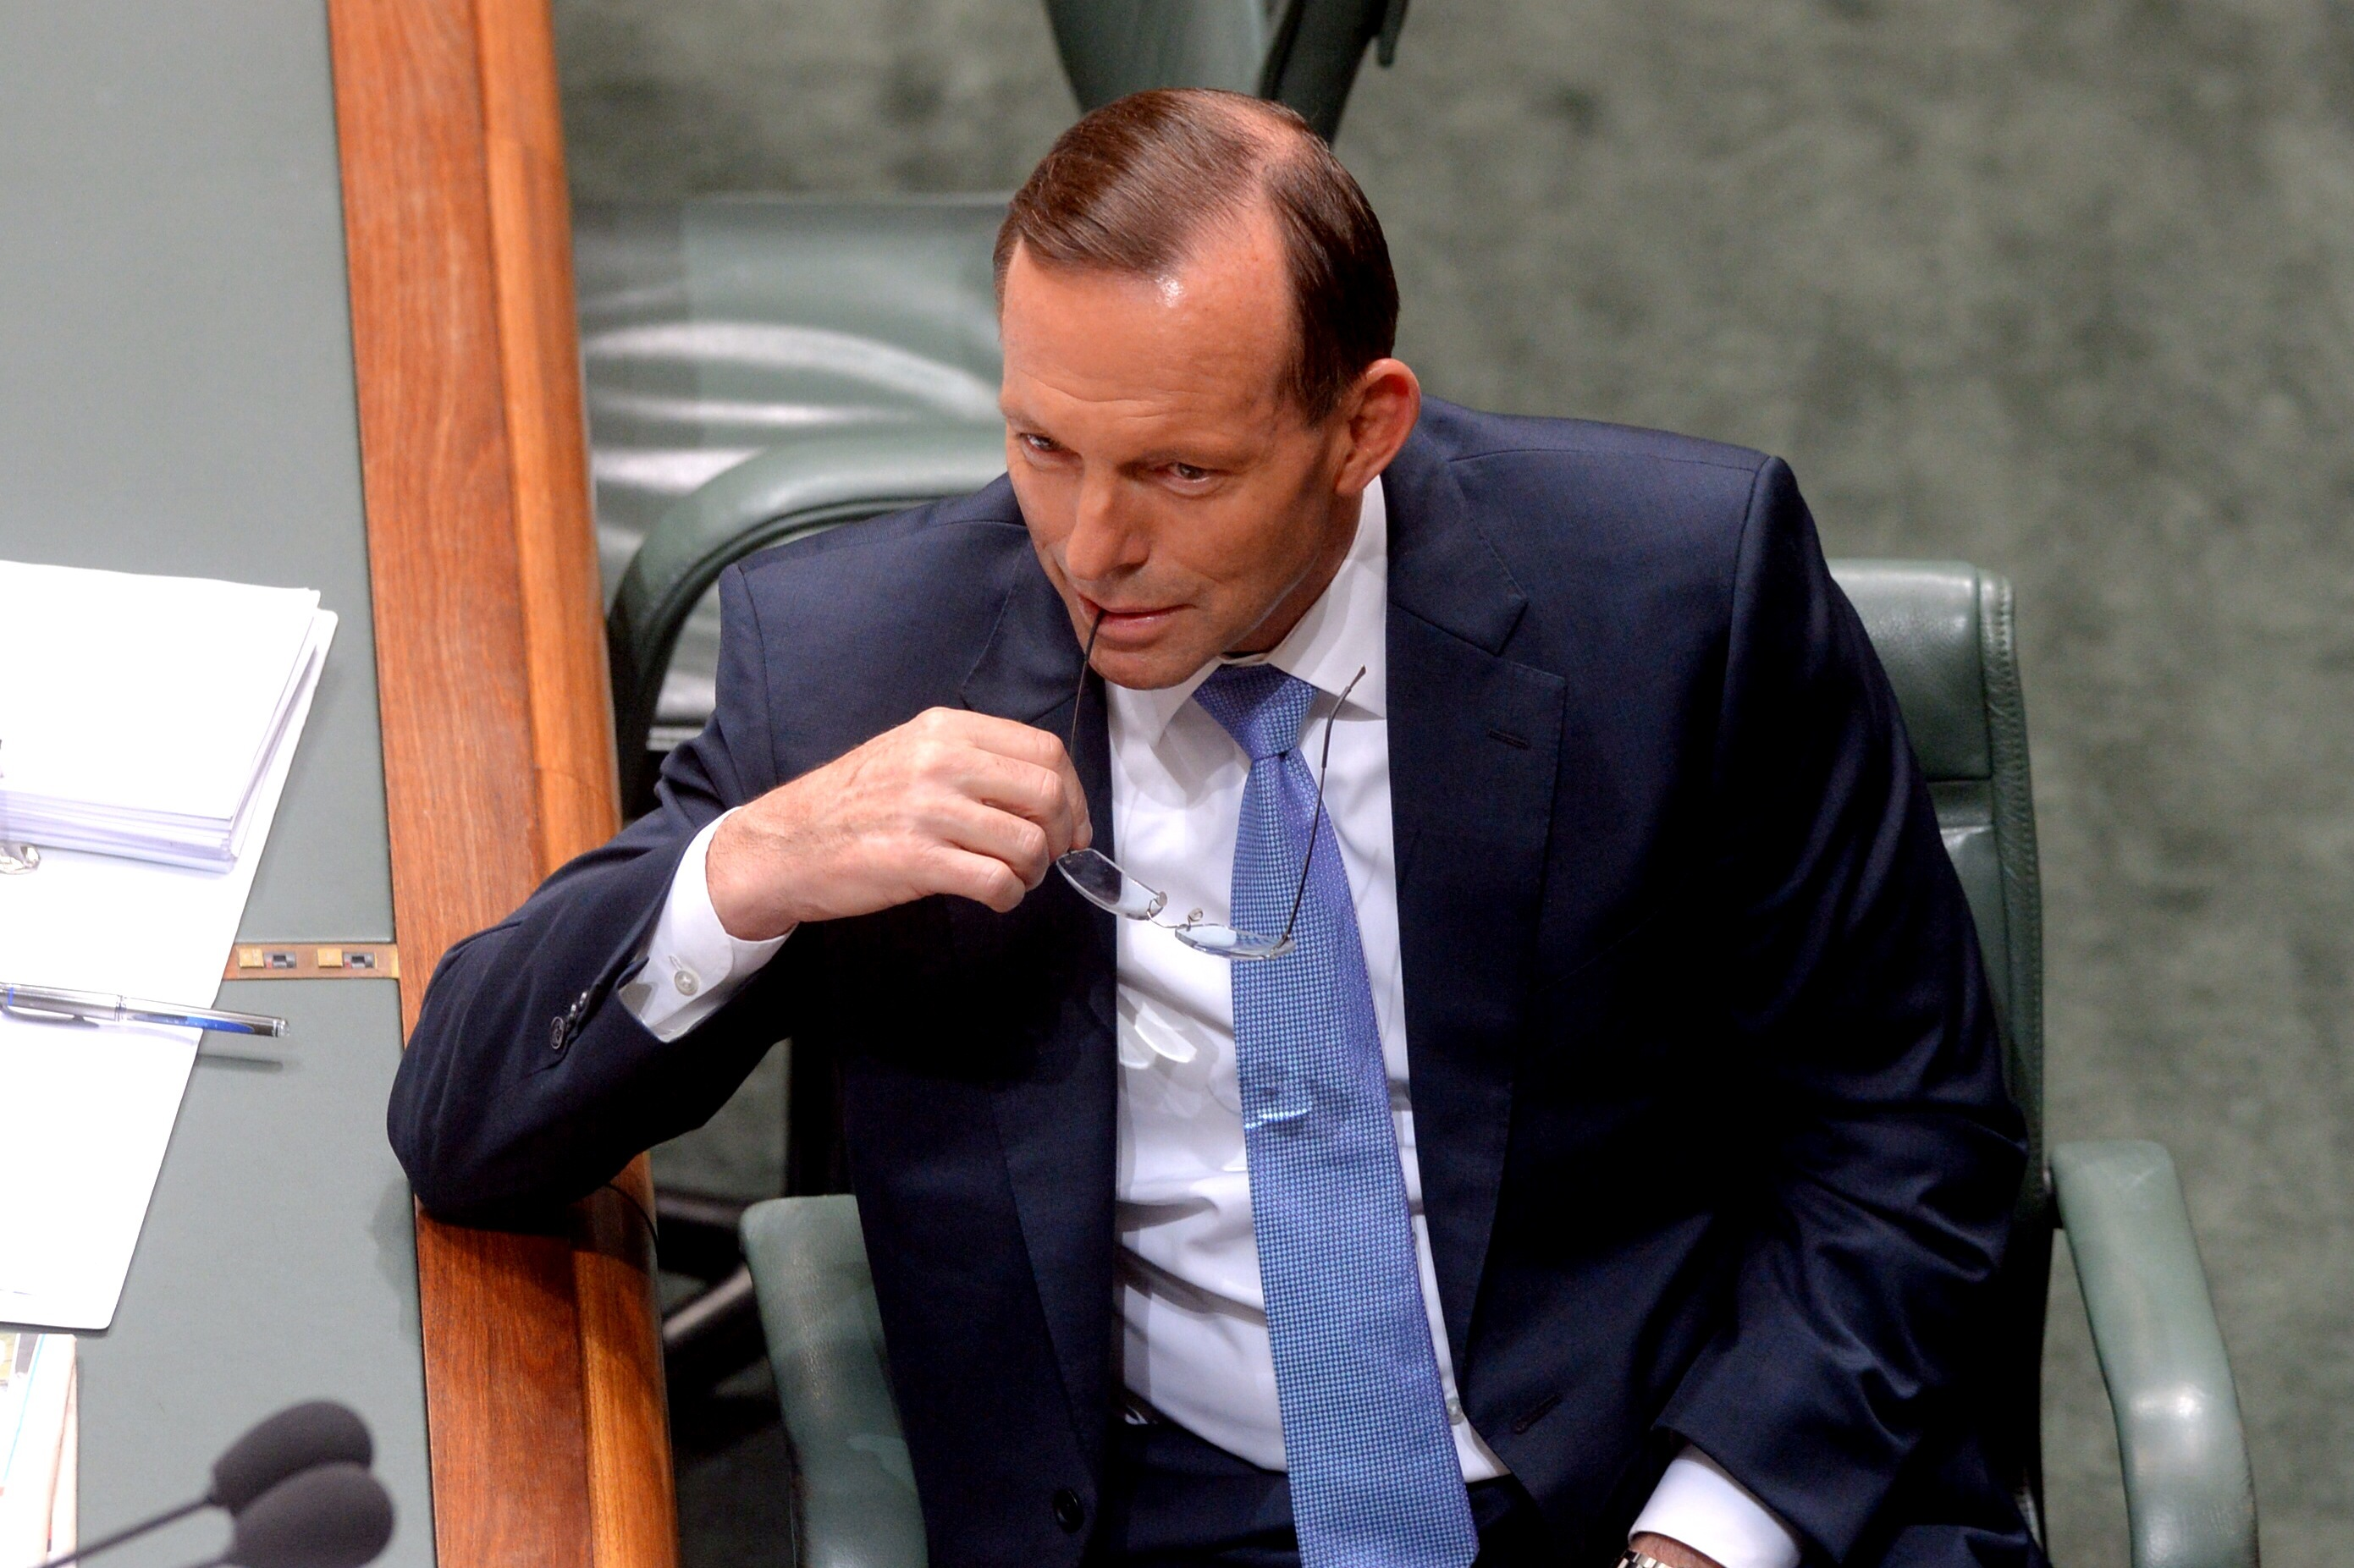 Vote Tony Out: On AusPol, Warringah and the Liberal Party today